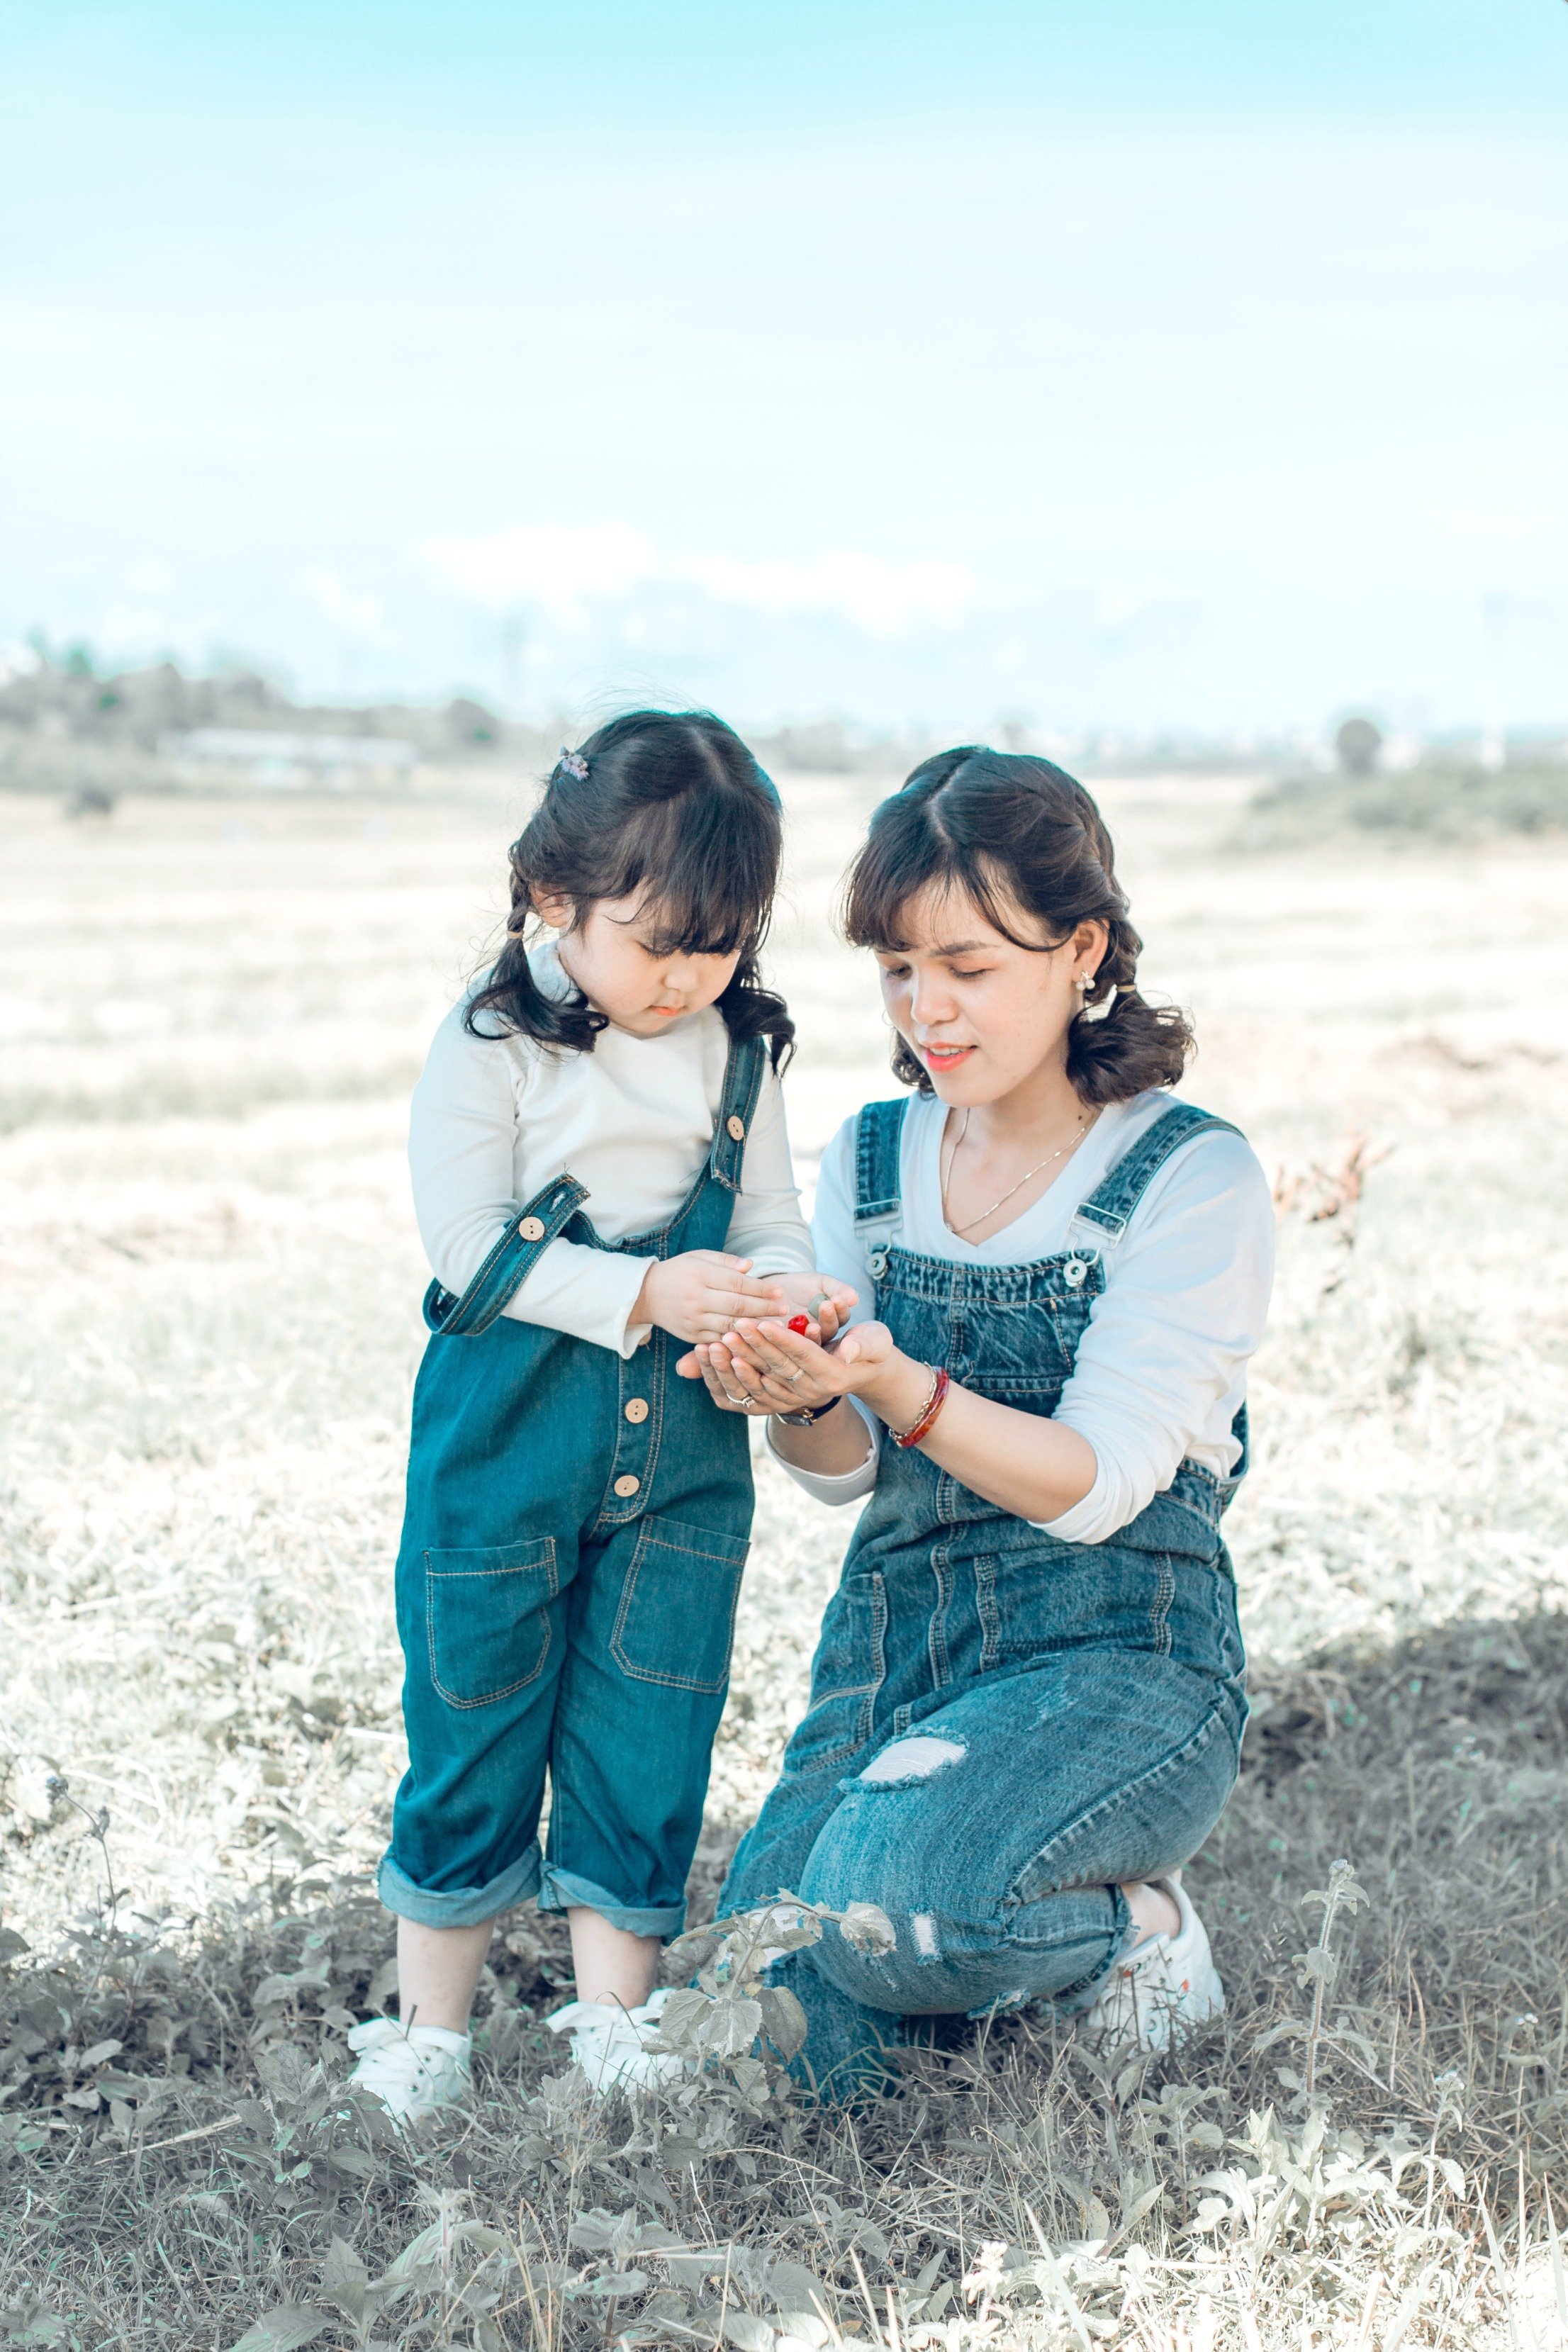 A mother is in a field with her young daughter.